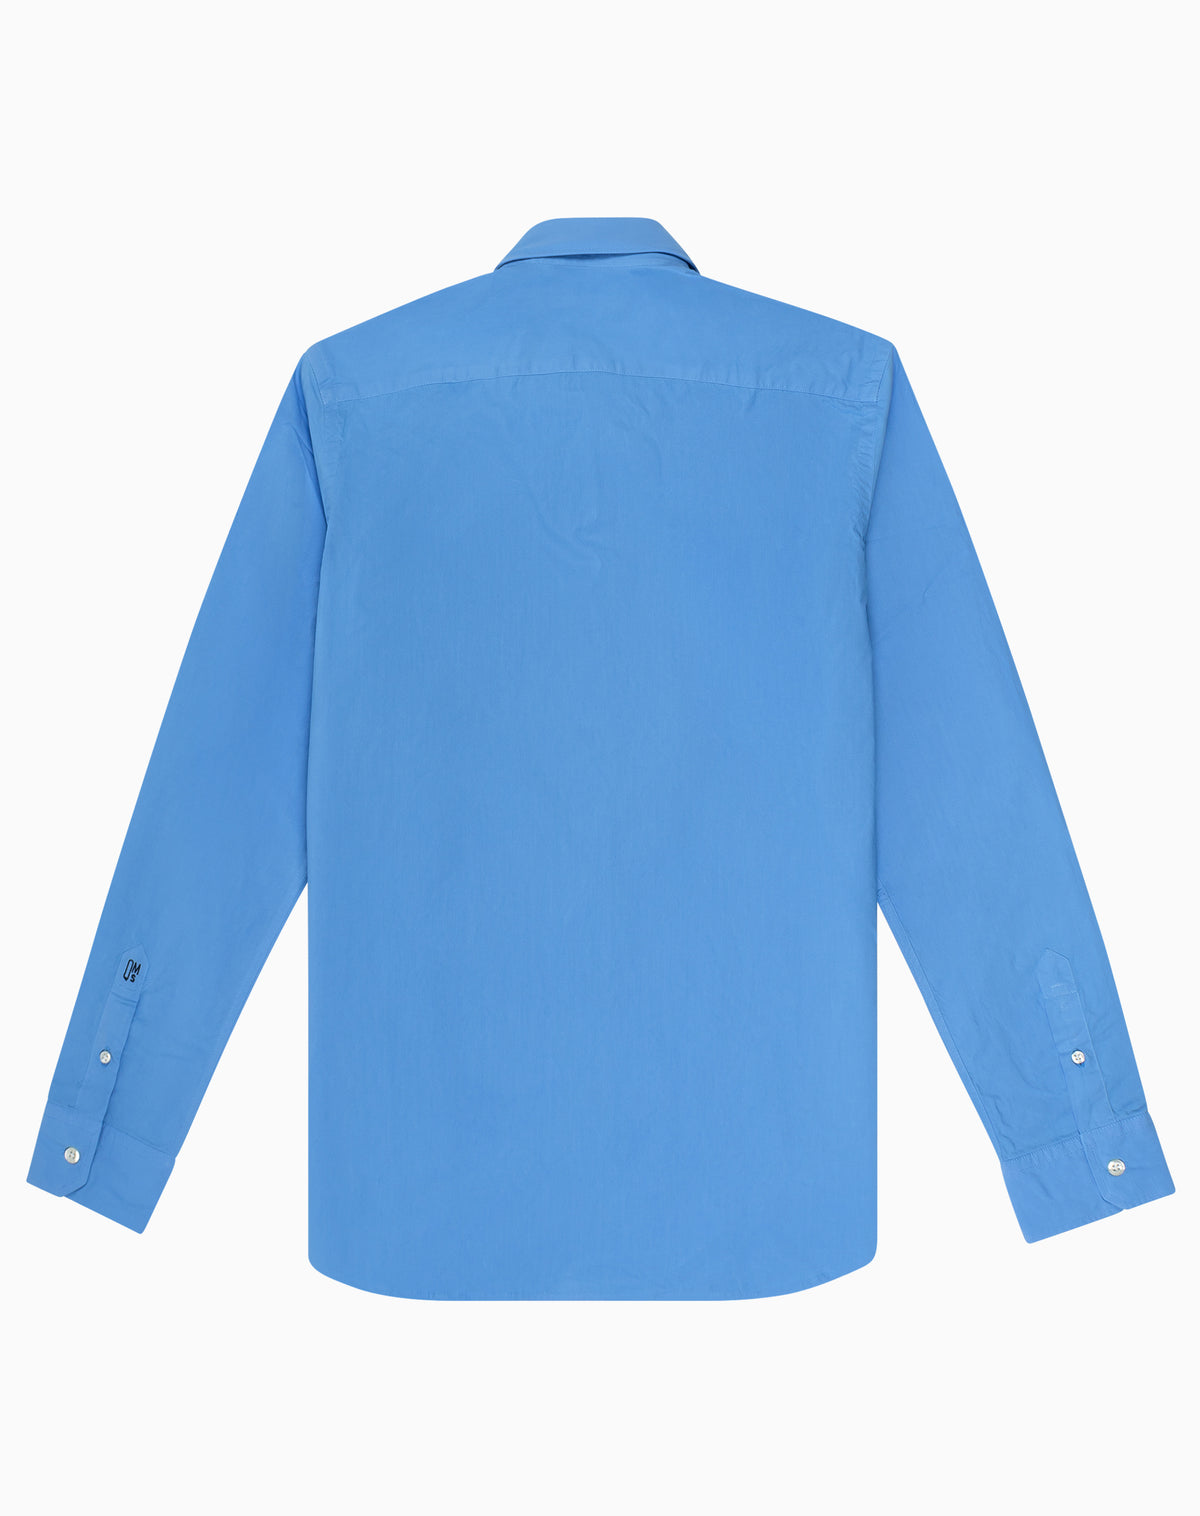 Poplin Shirt in French Blue